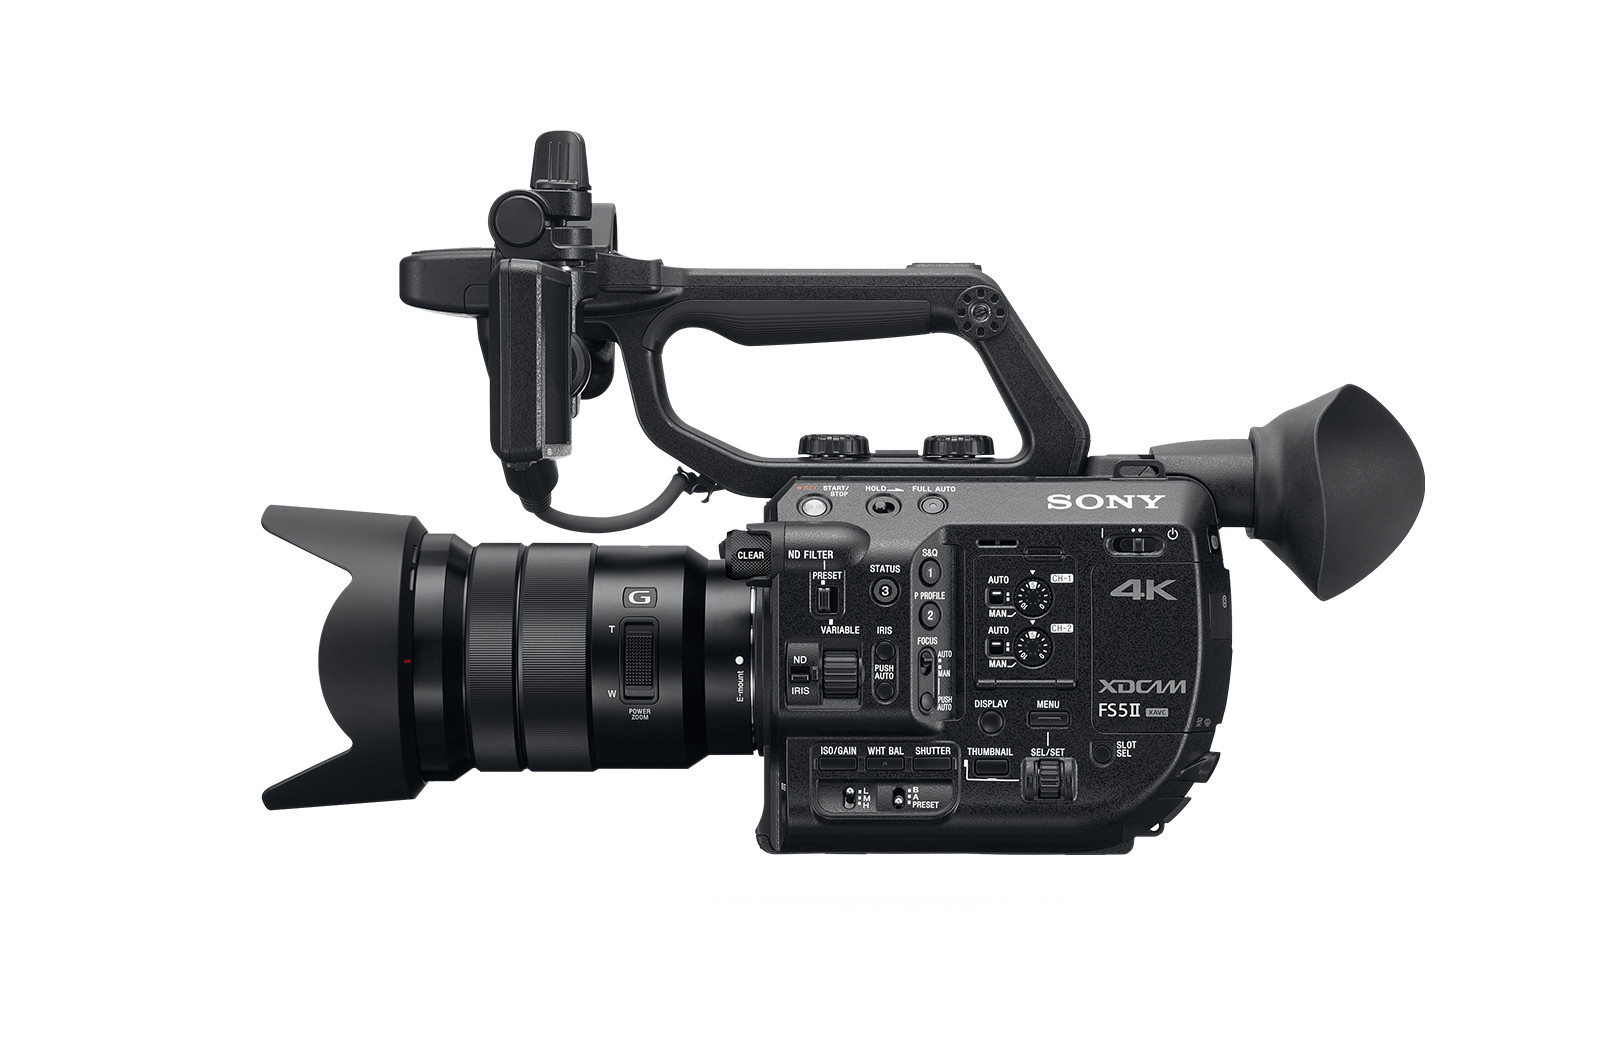 Sony Fs5 Ii Professional Handheld Camcorder 4k Hdr Find Out More Drive 5 Car Stereo Manual